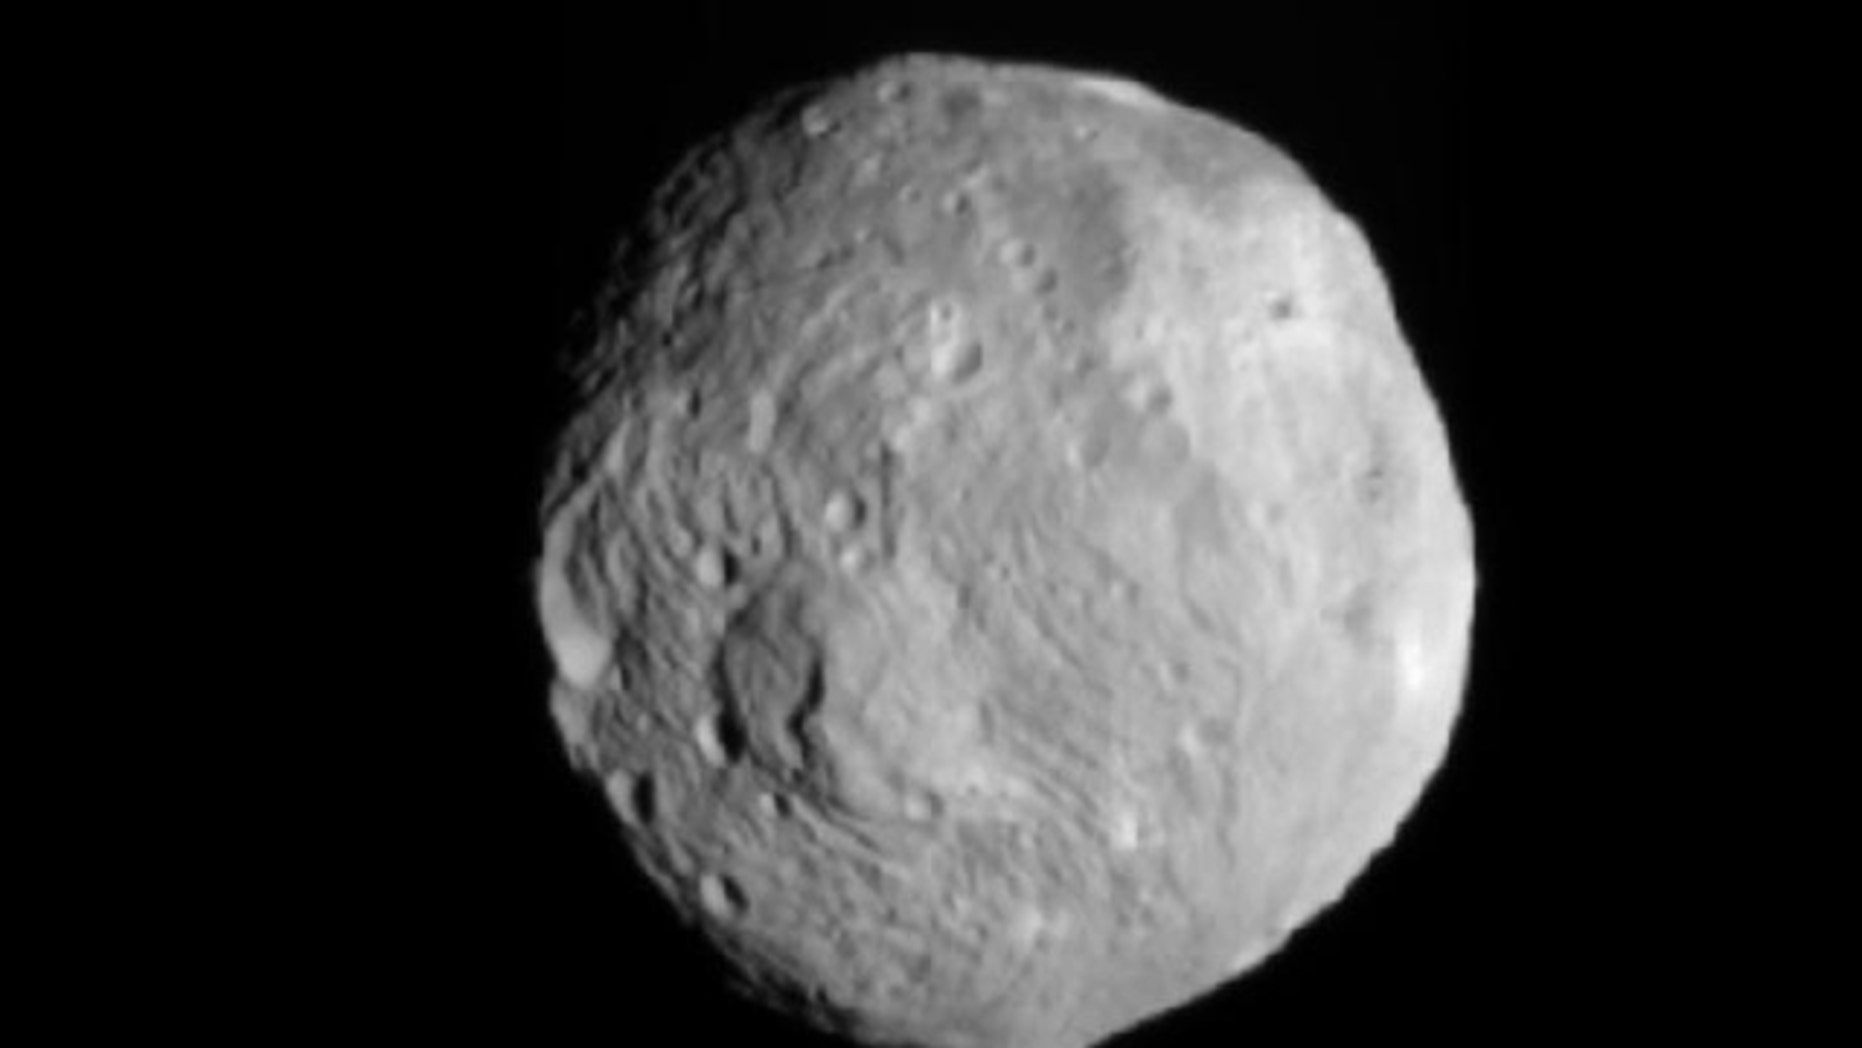 NASA's Dawn spacecraft snapped this photo of the huge asteroid Vesta on July 9, 2011. It was taken from a distance of about 26,000 miles (41,000 kilometers) away from Vesta.